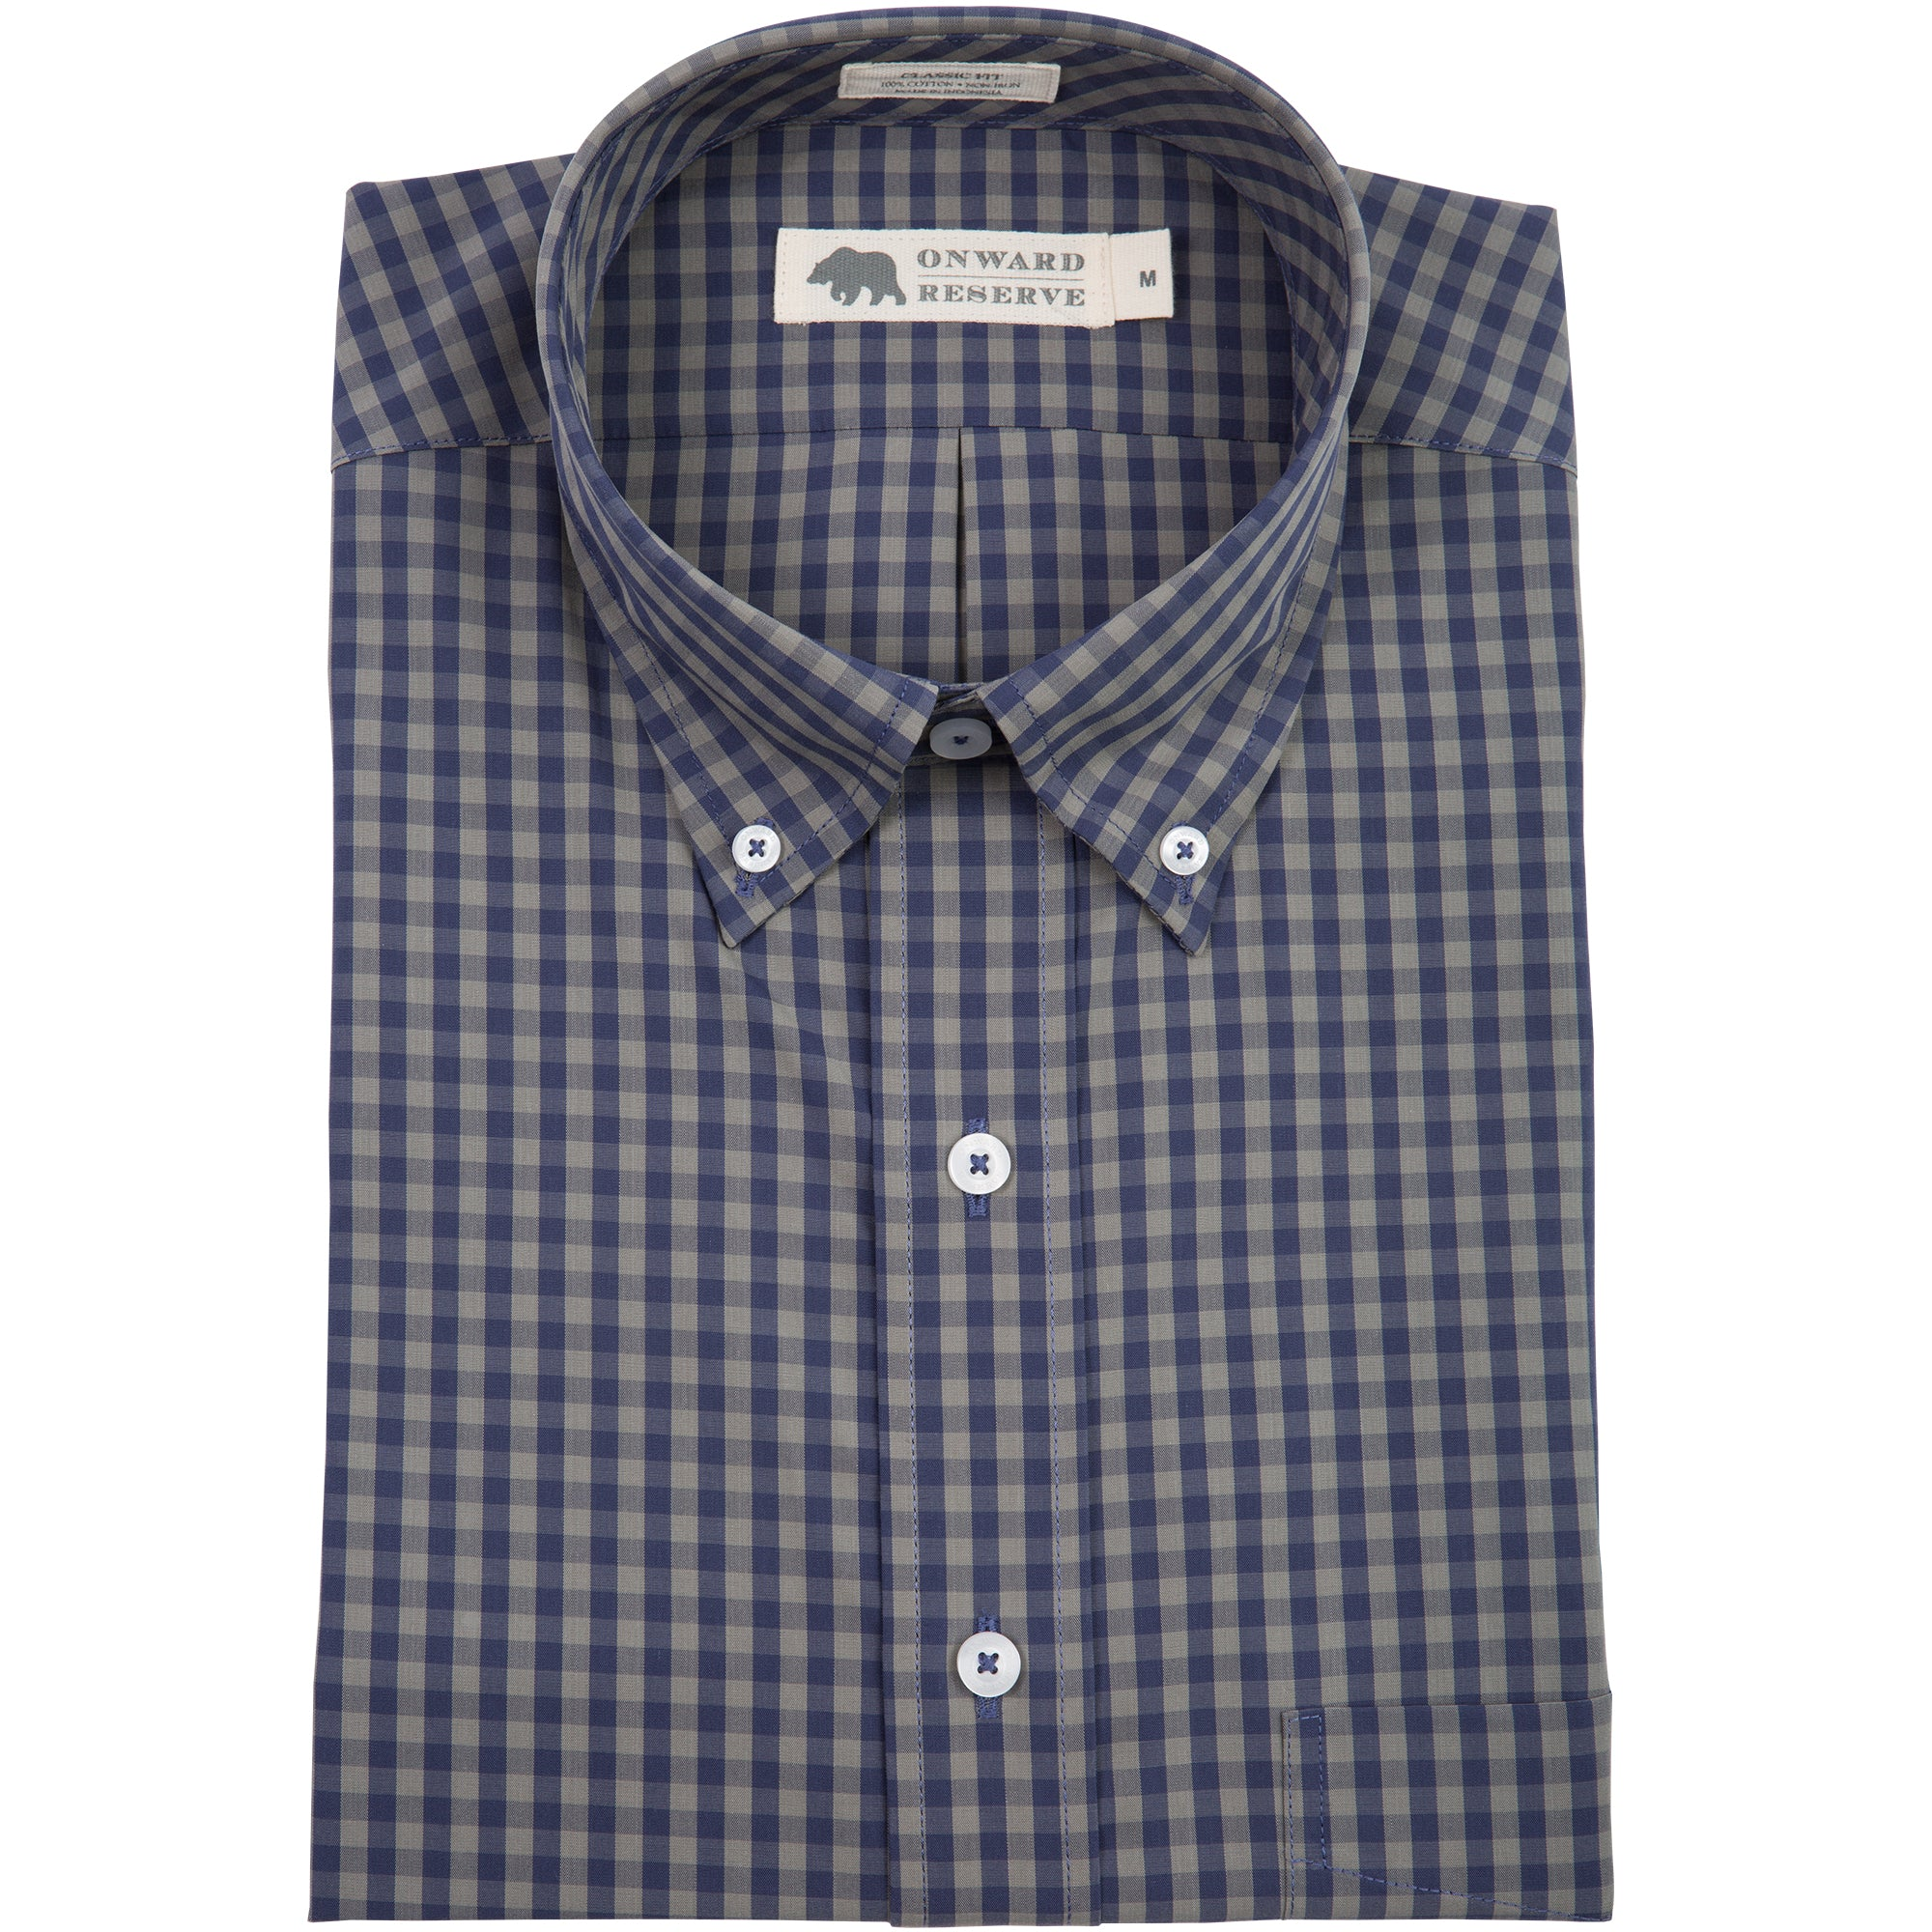 West End Classic Fit Button Down - Onward Reserve